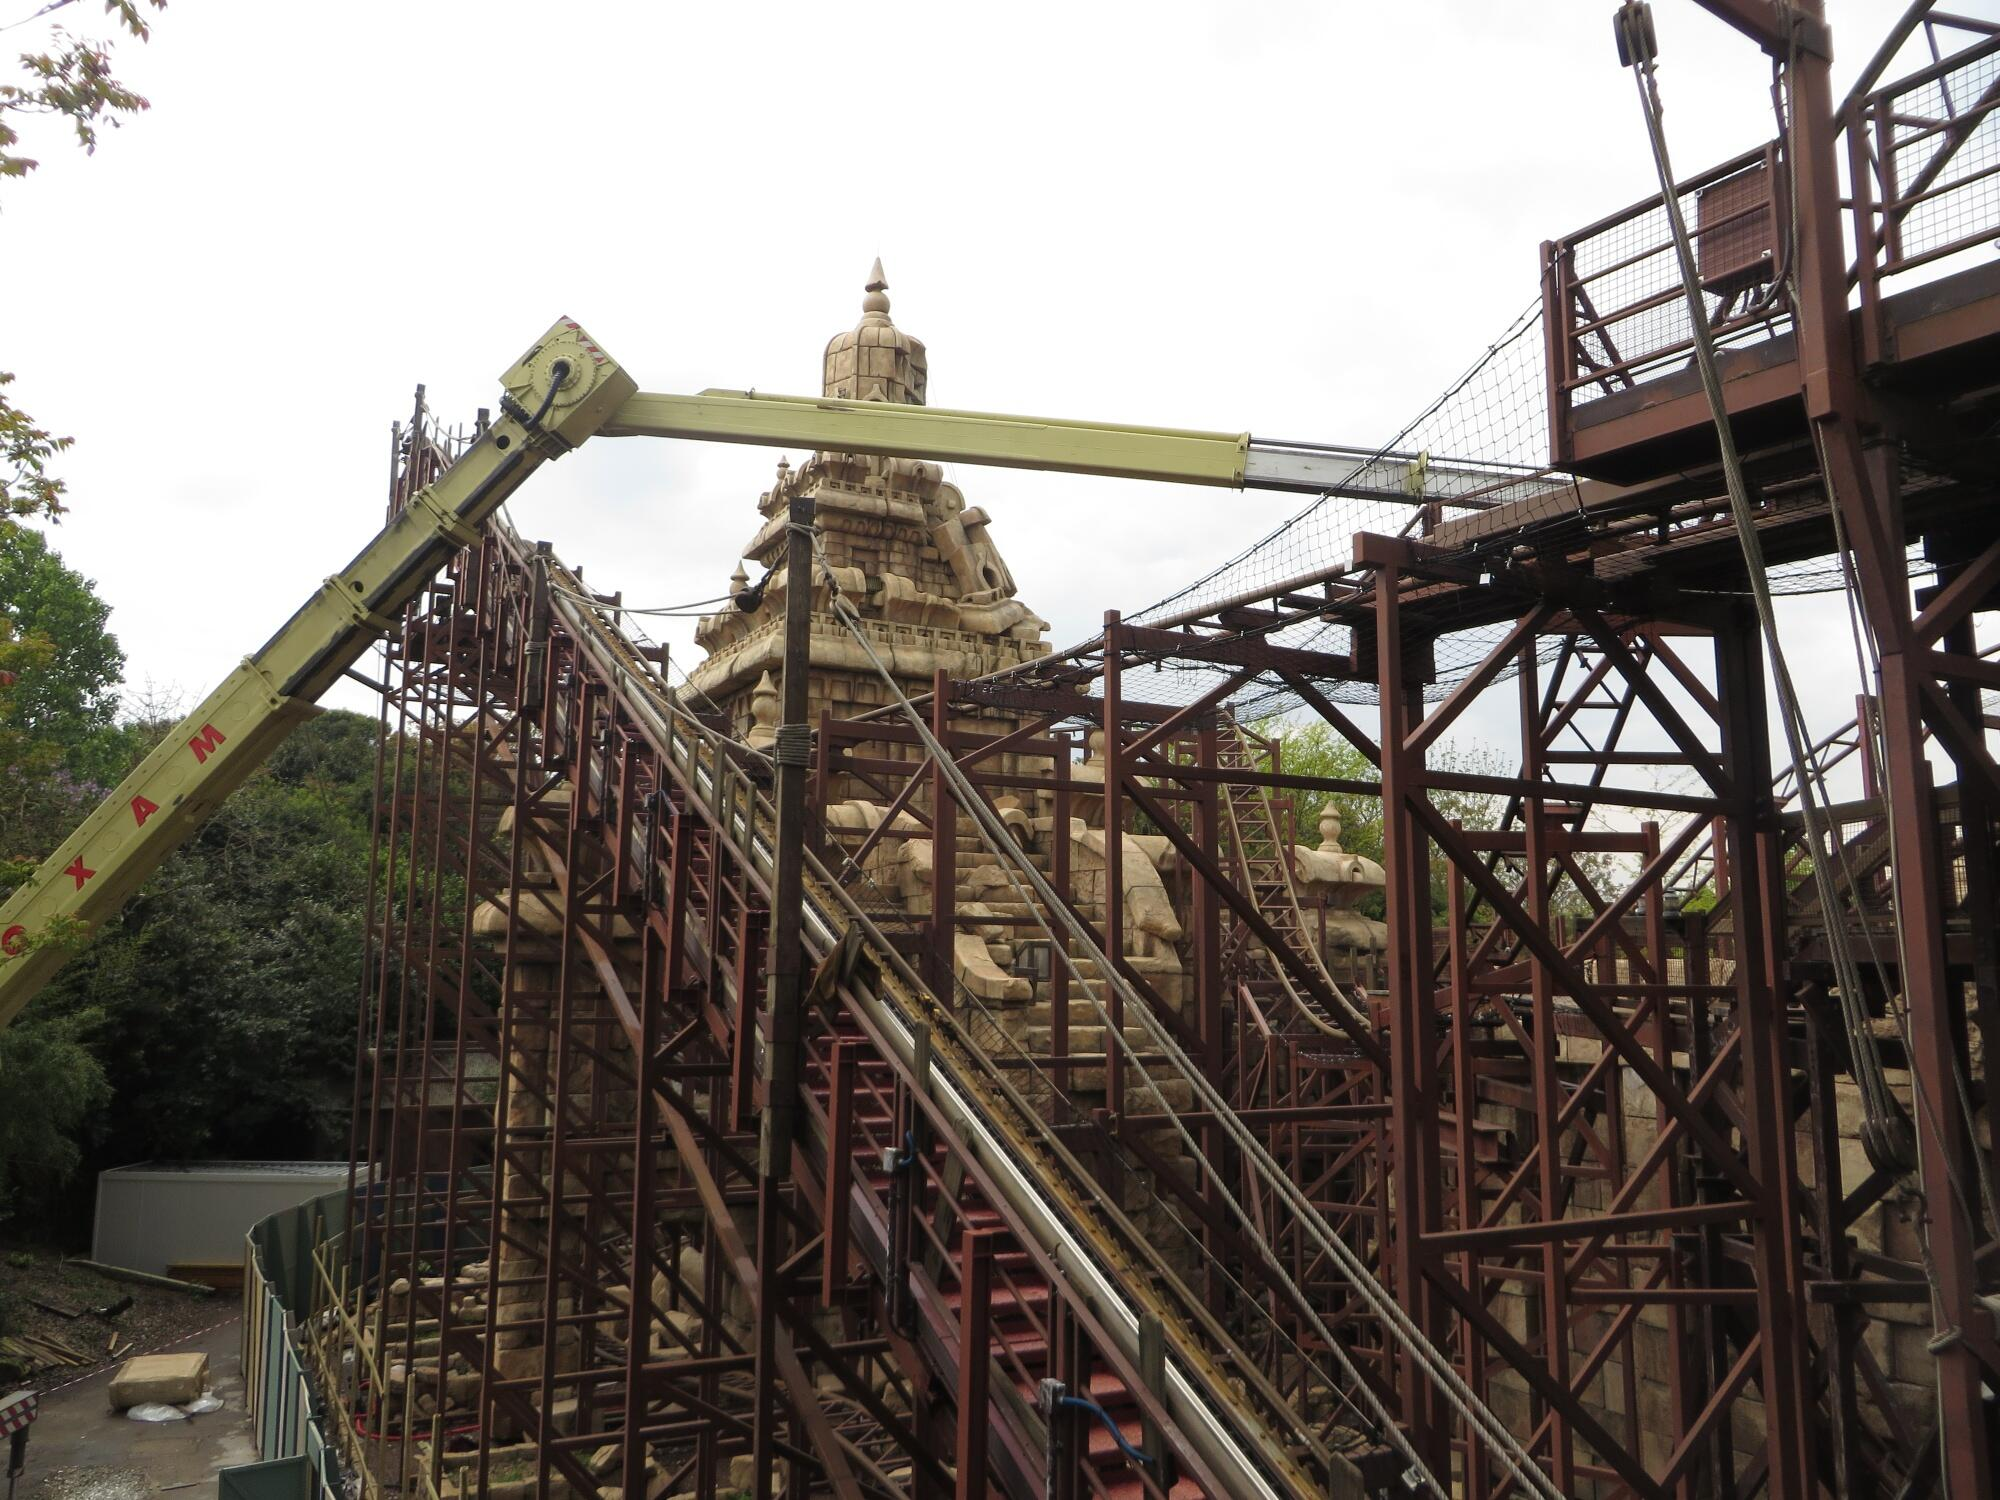 The great new world discussion thread page 103 - The Big Refurbishment For Indiana Jones And The Temple Of Peril Is Nearly Concluding Attraction Due To Reopen May 29